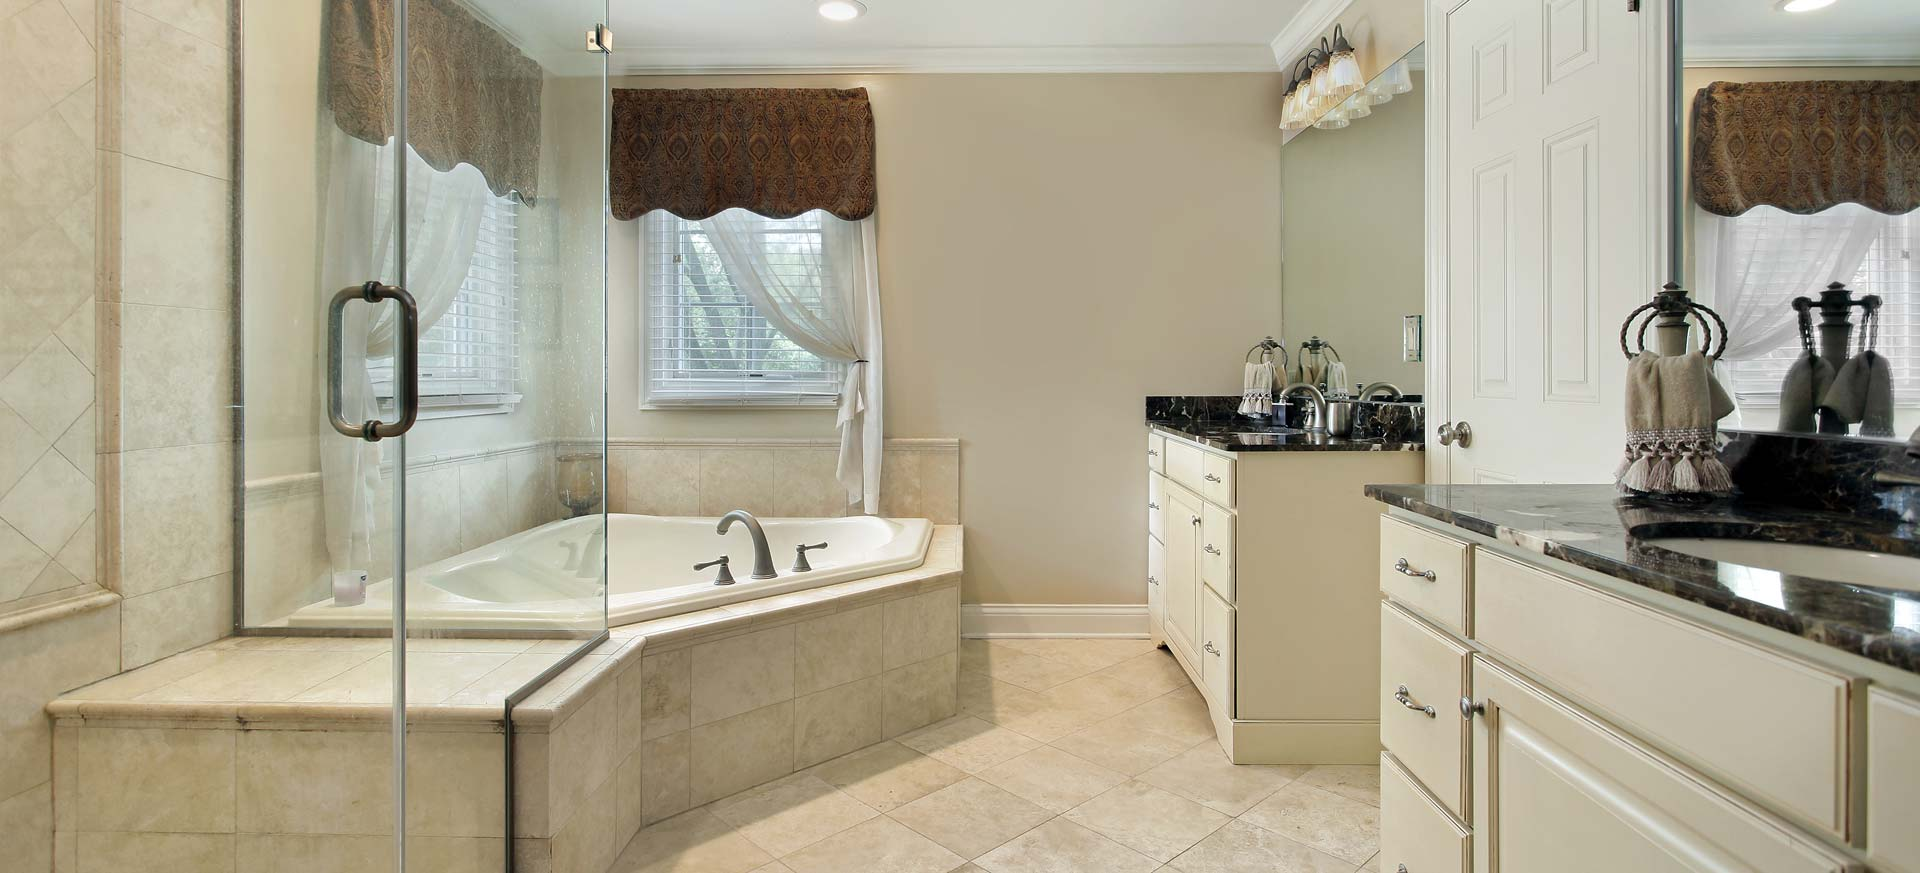 Bathroom Renovations Raleigh Nc quality one contracting | remodeling & renovations raleigh nc